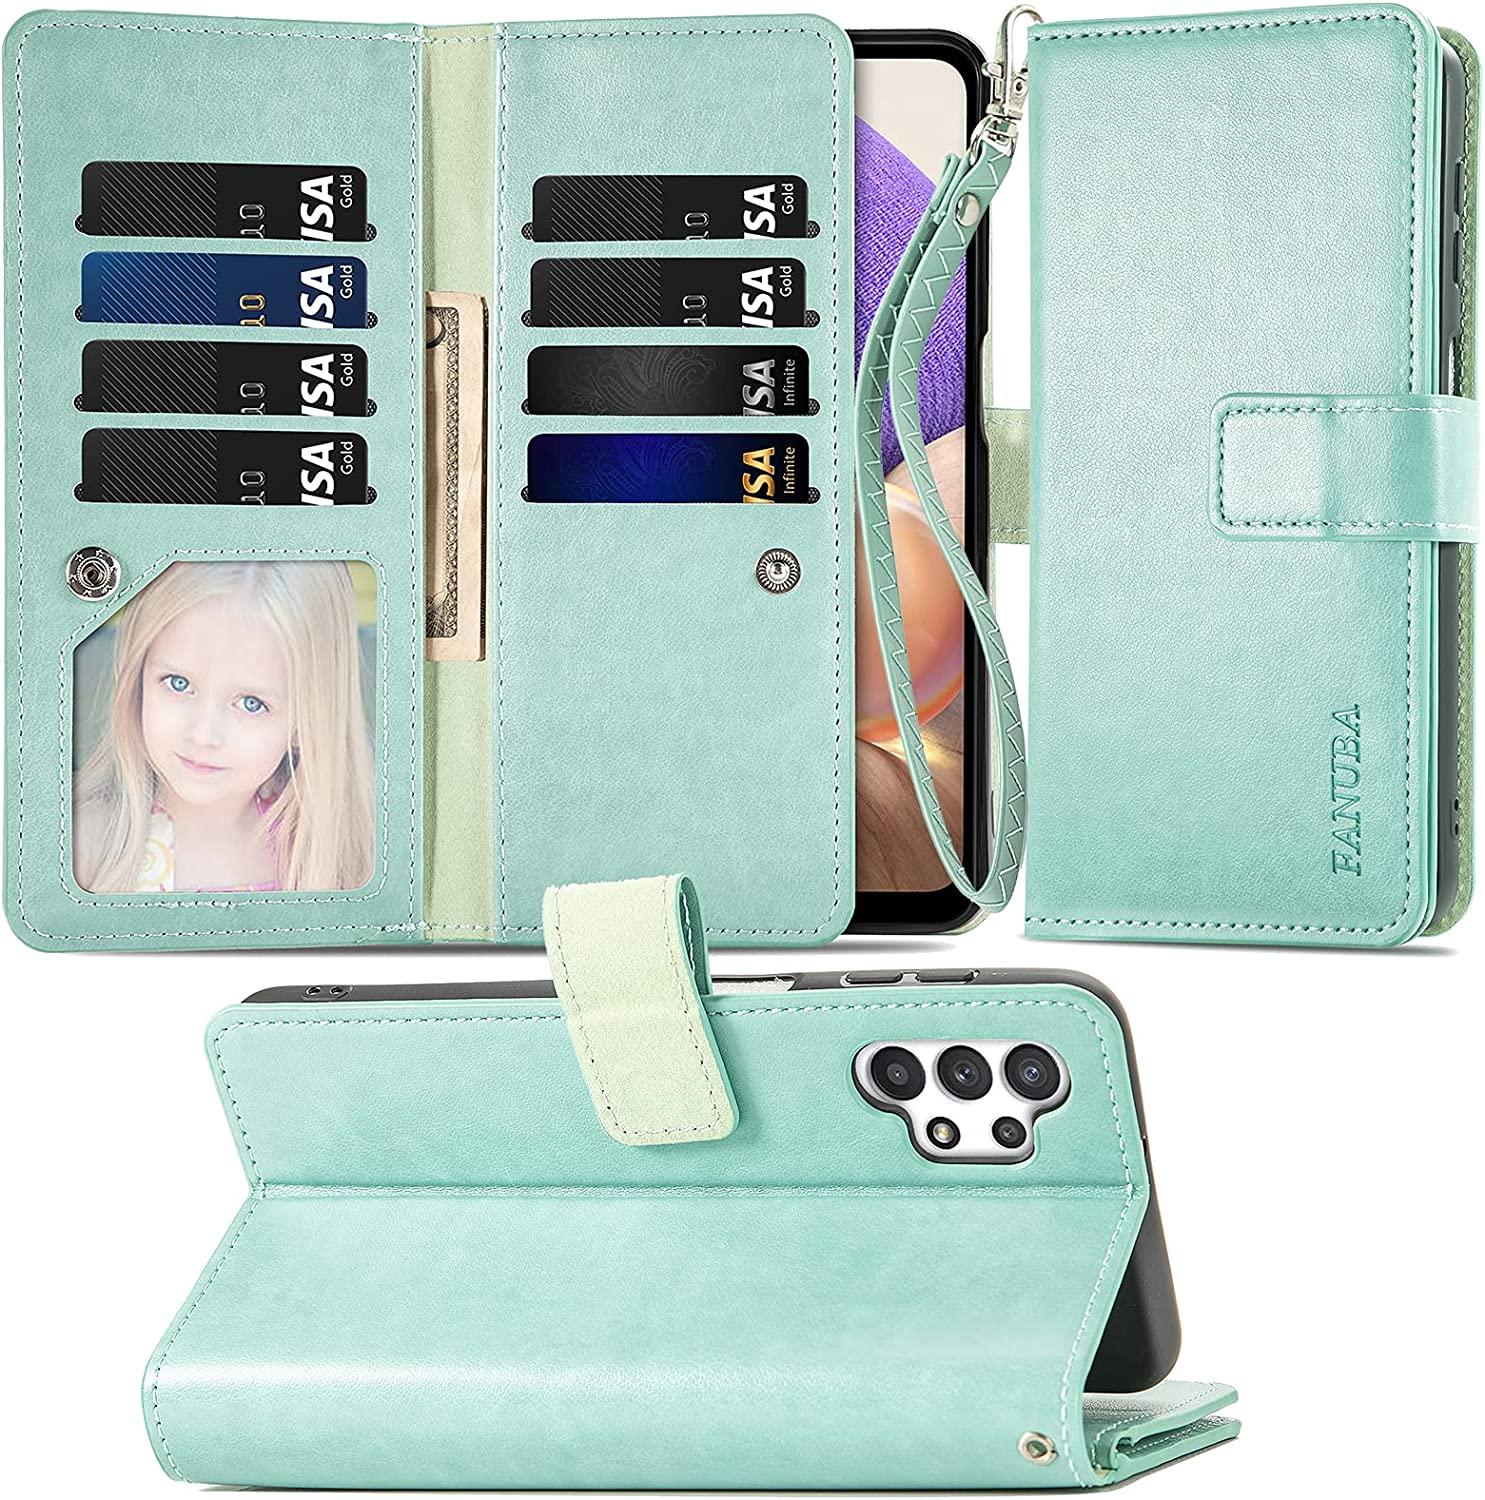 FANUBA for Galaxy A32 5G Wallet Phone Case,Soft PU Leather Magnetic Buttons Wrist Strap Card Holders Shockproof Kickstand Protective [Flip Folio Cover] for Samsung Galaxy A32 5G - Green